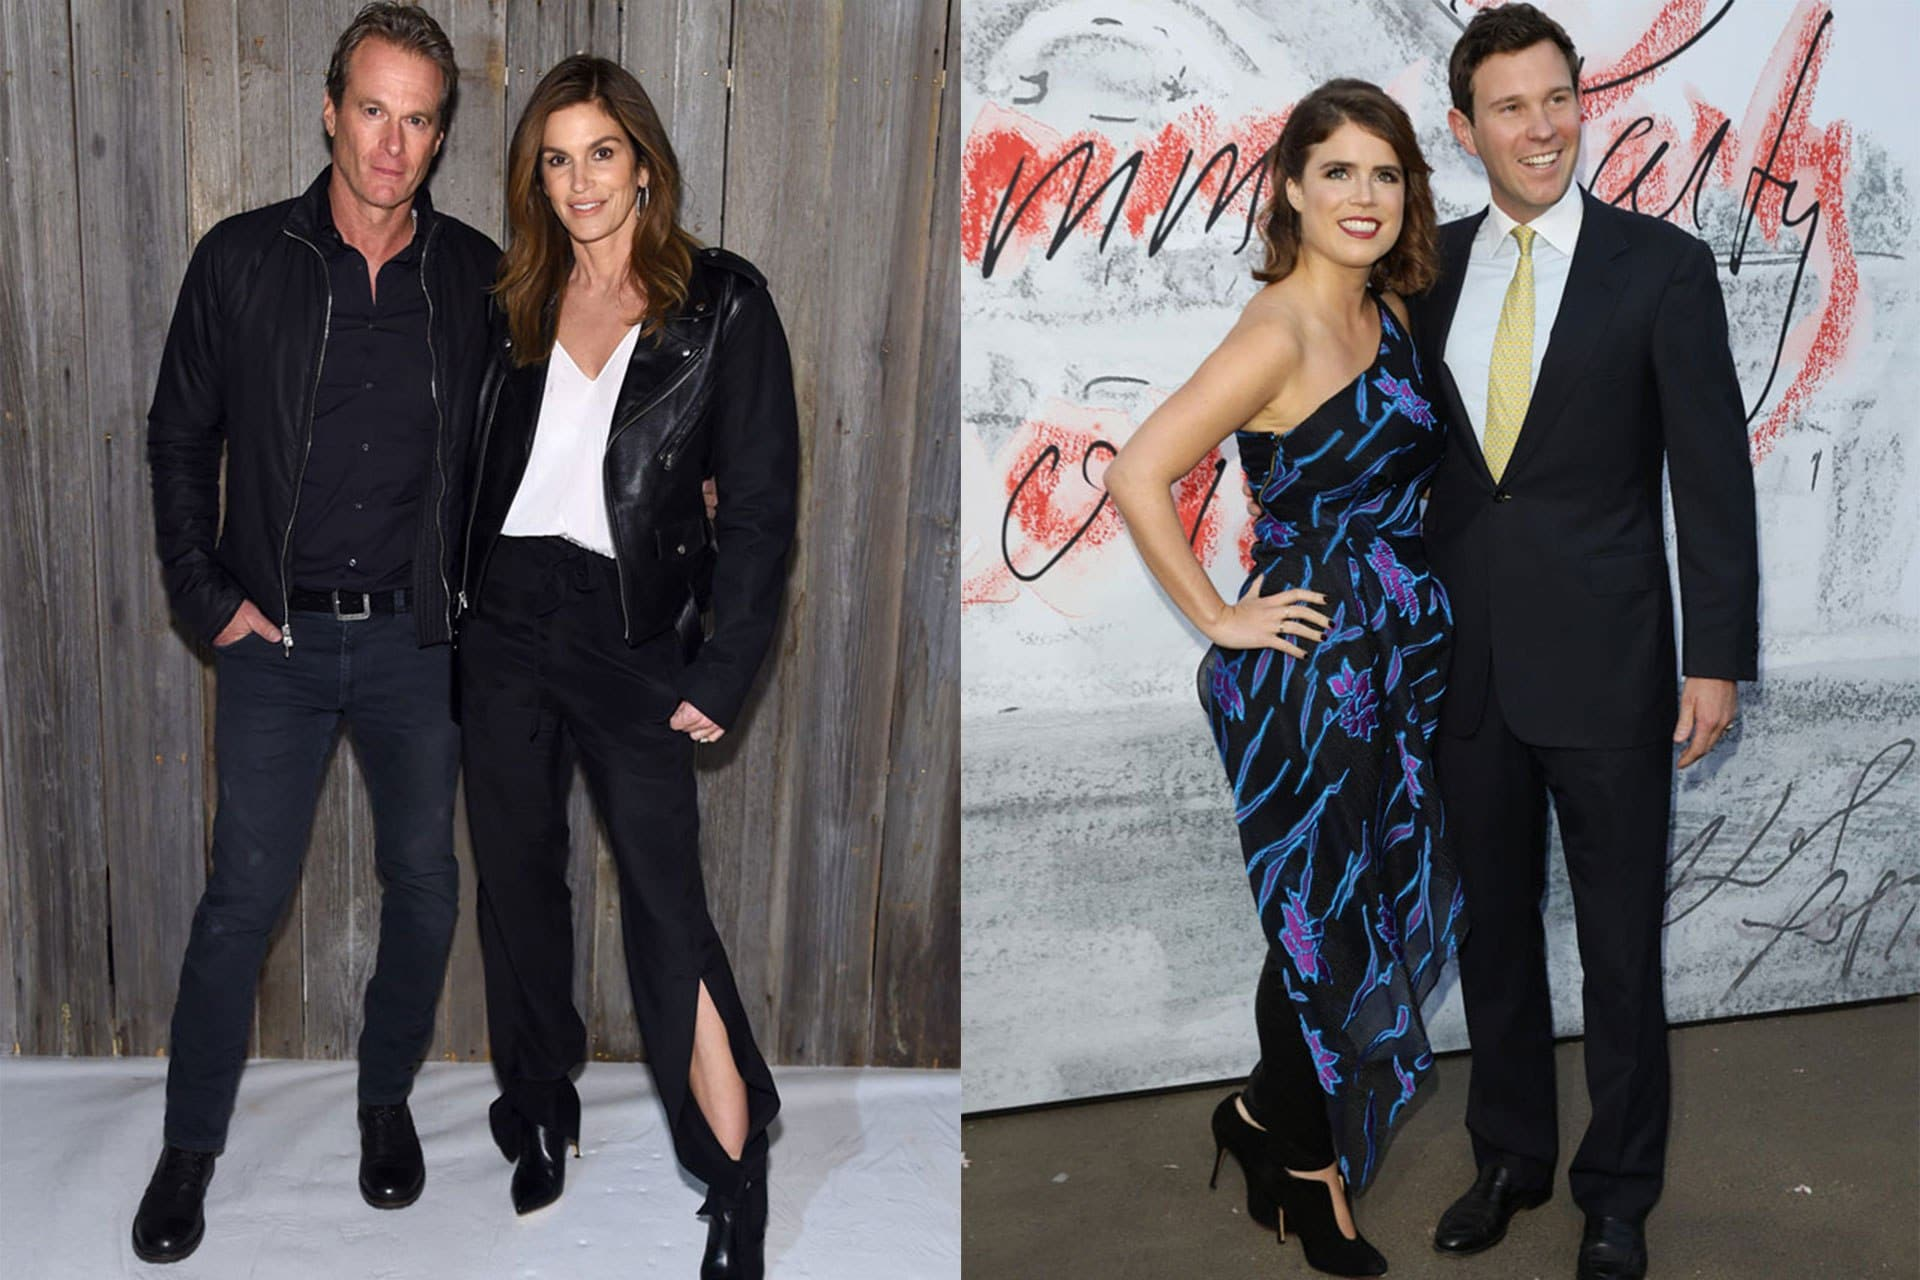 Cindy Crawford and Princess Eugenie are double dating